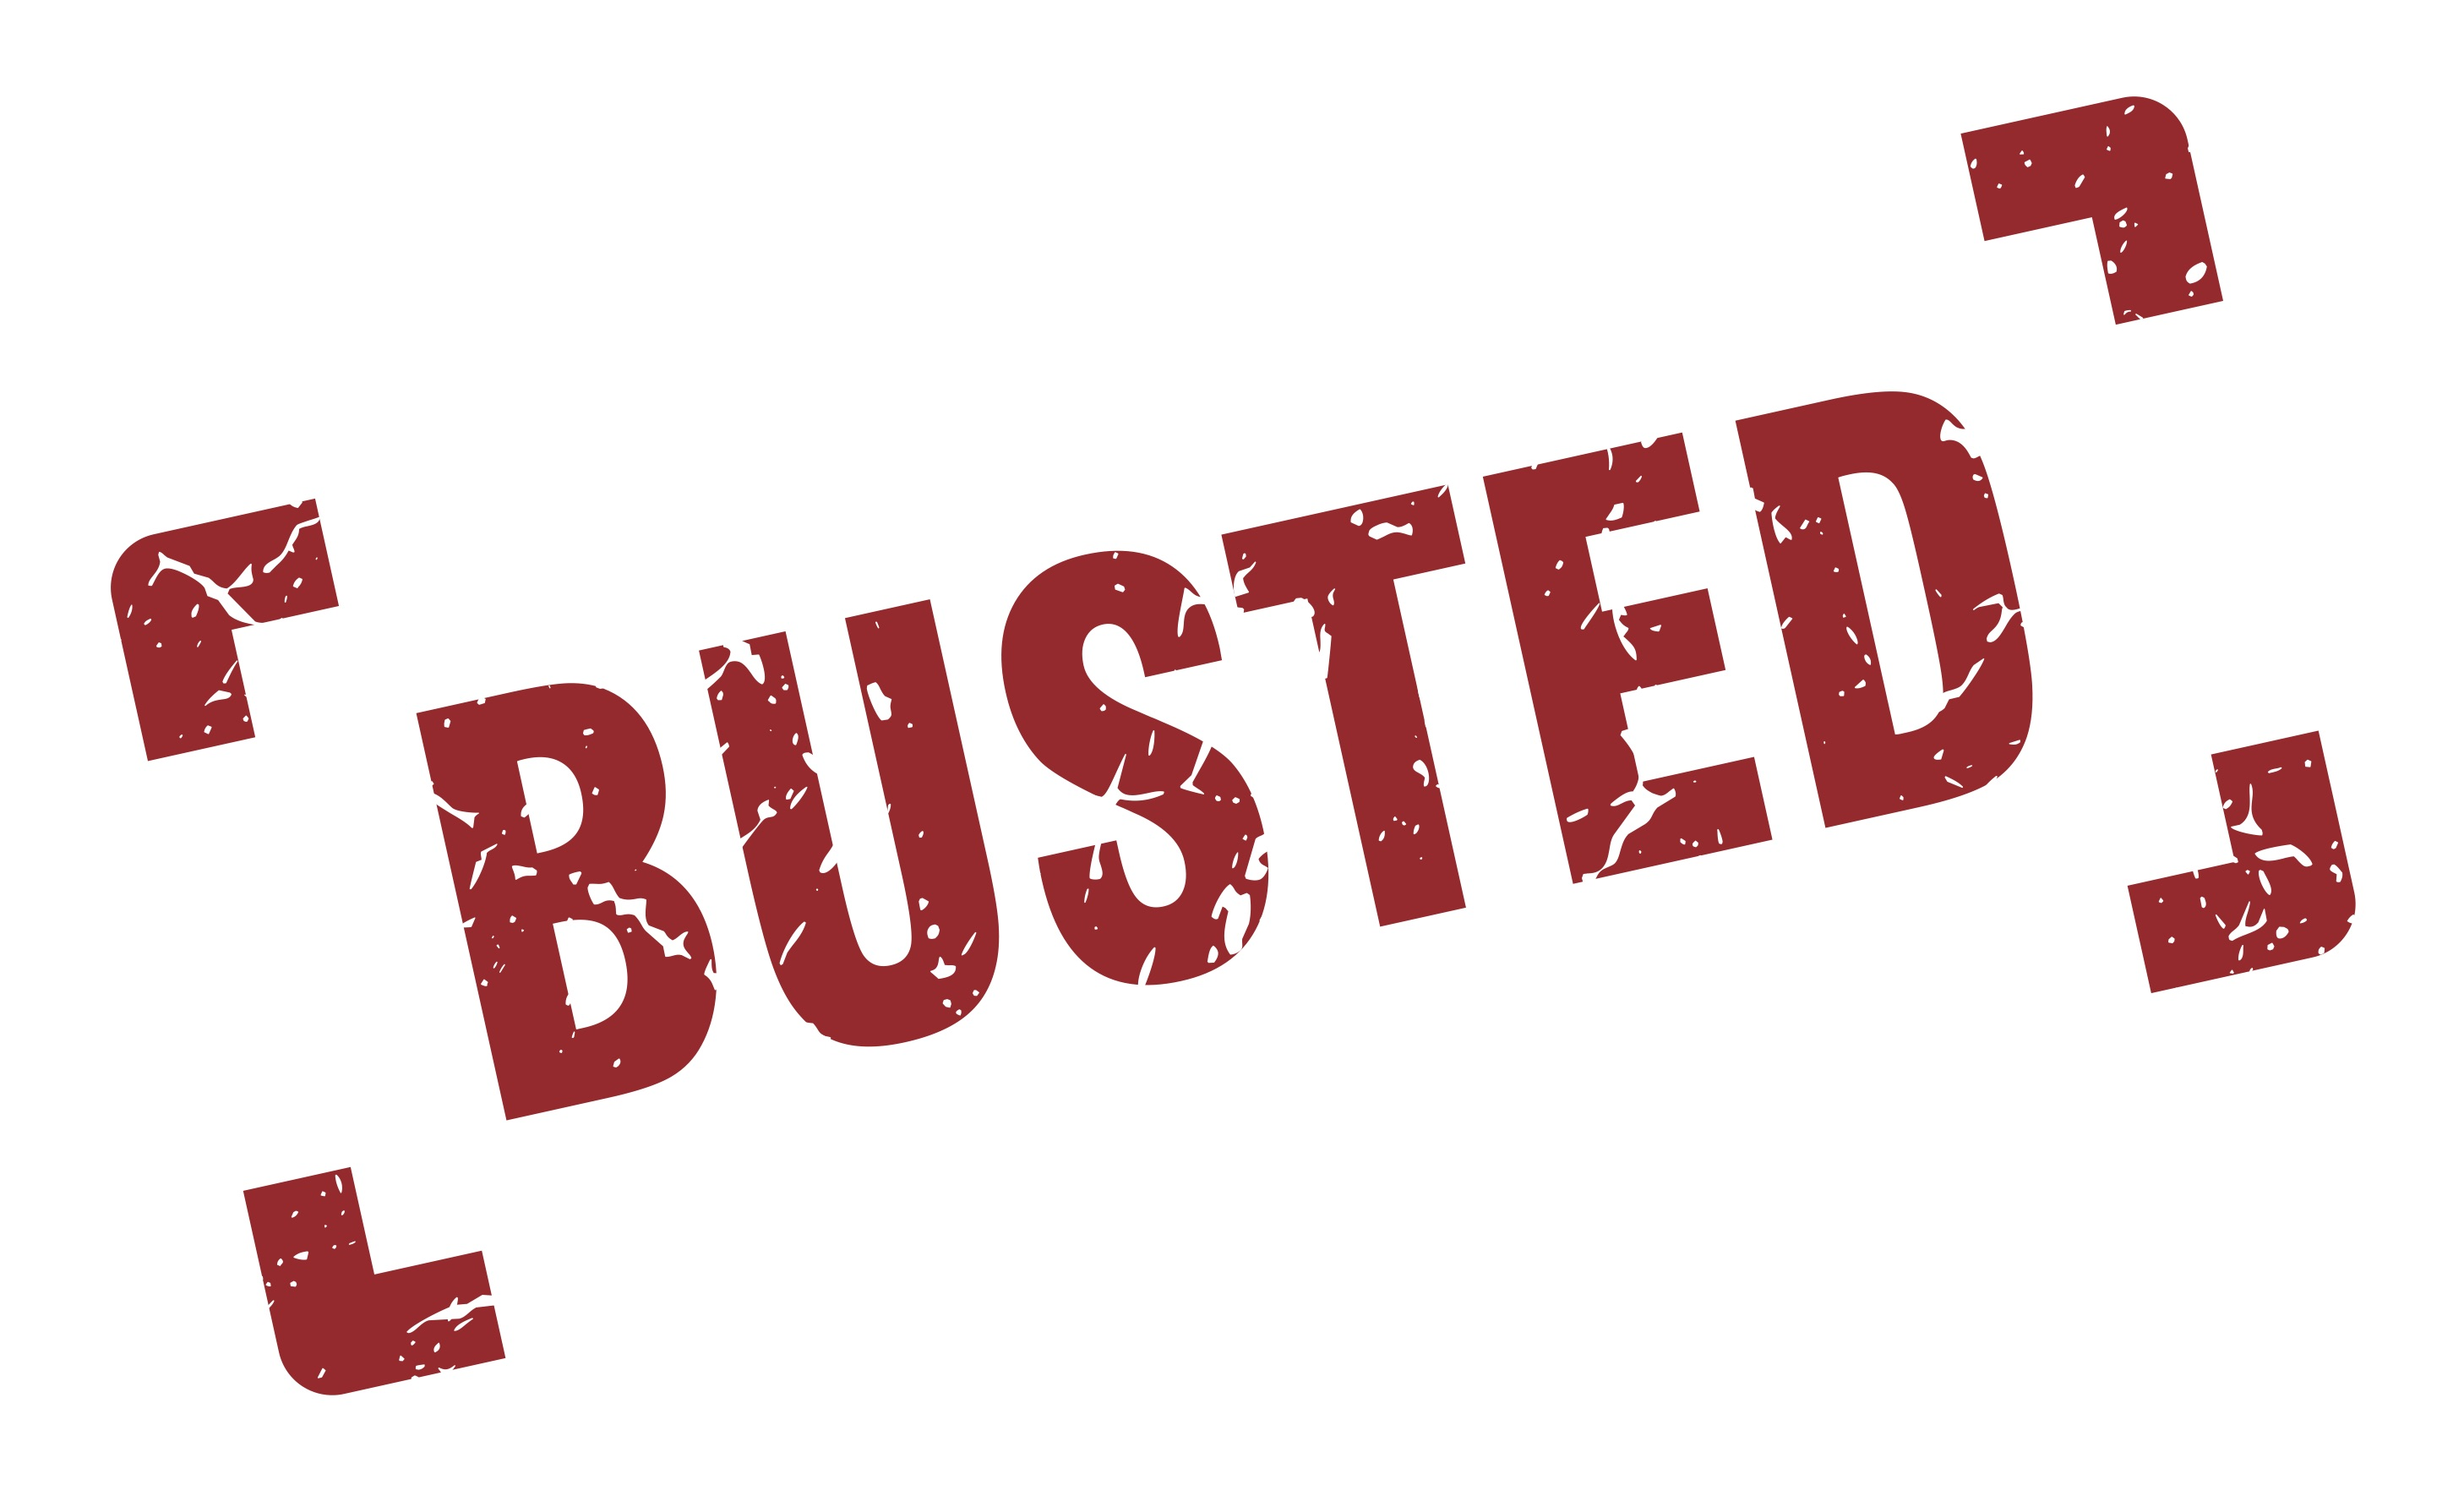 bigstock-Busted-Stamp-Busted-Square-Gr-312069865